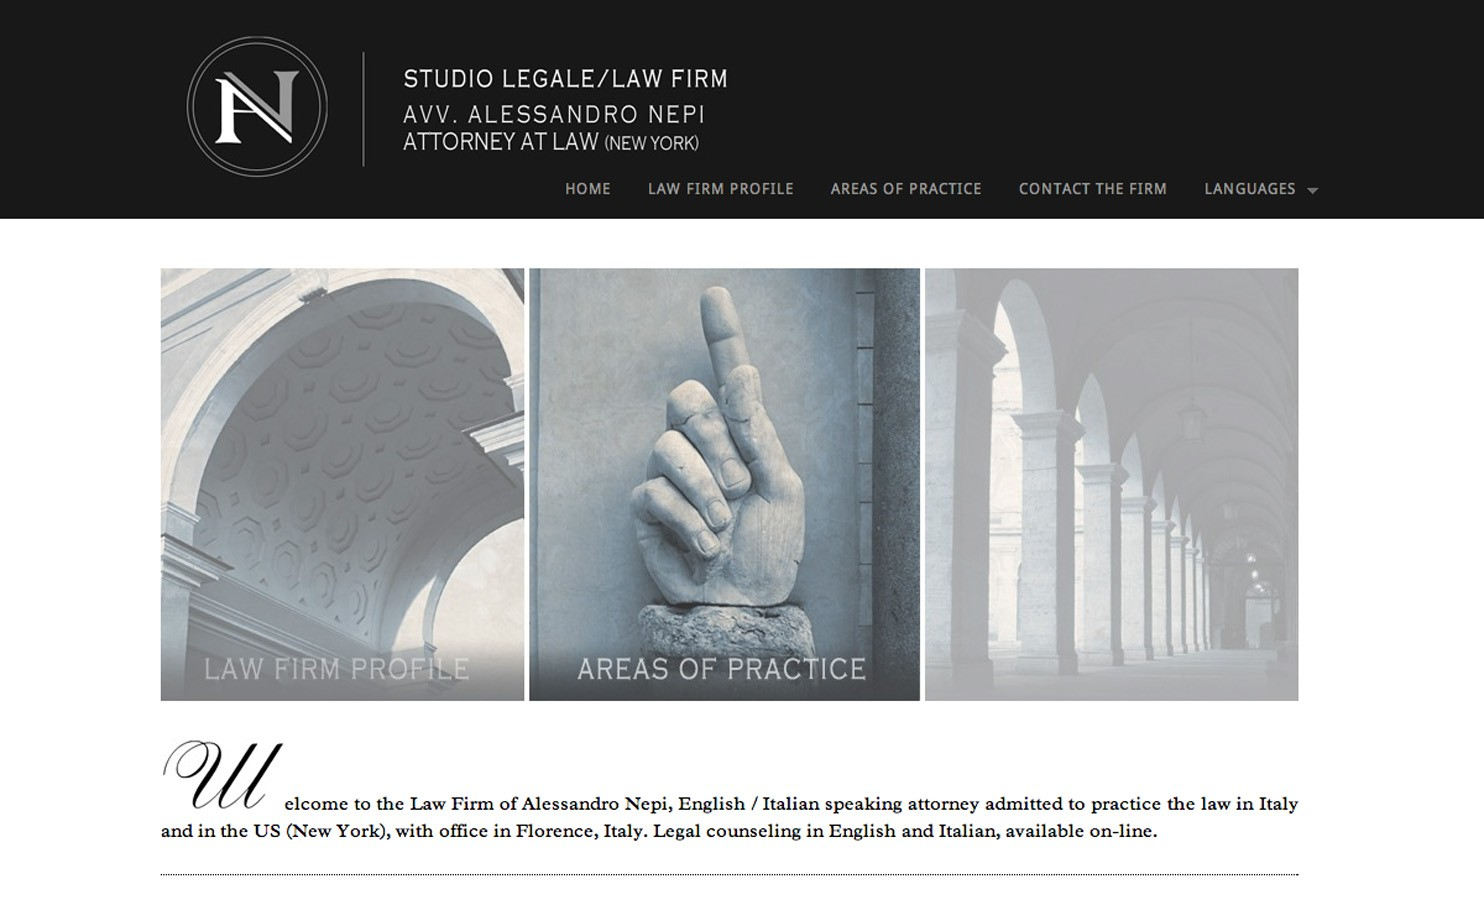 Studio Legale / Law Firm Avv. Alessandro Nepi / Attorney at Law (New York)